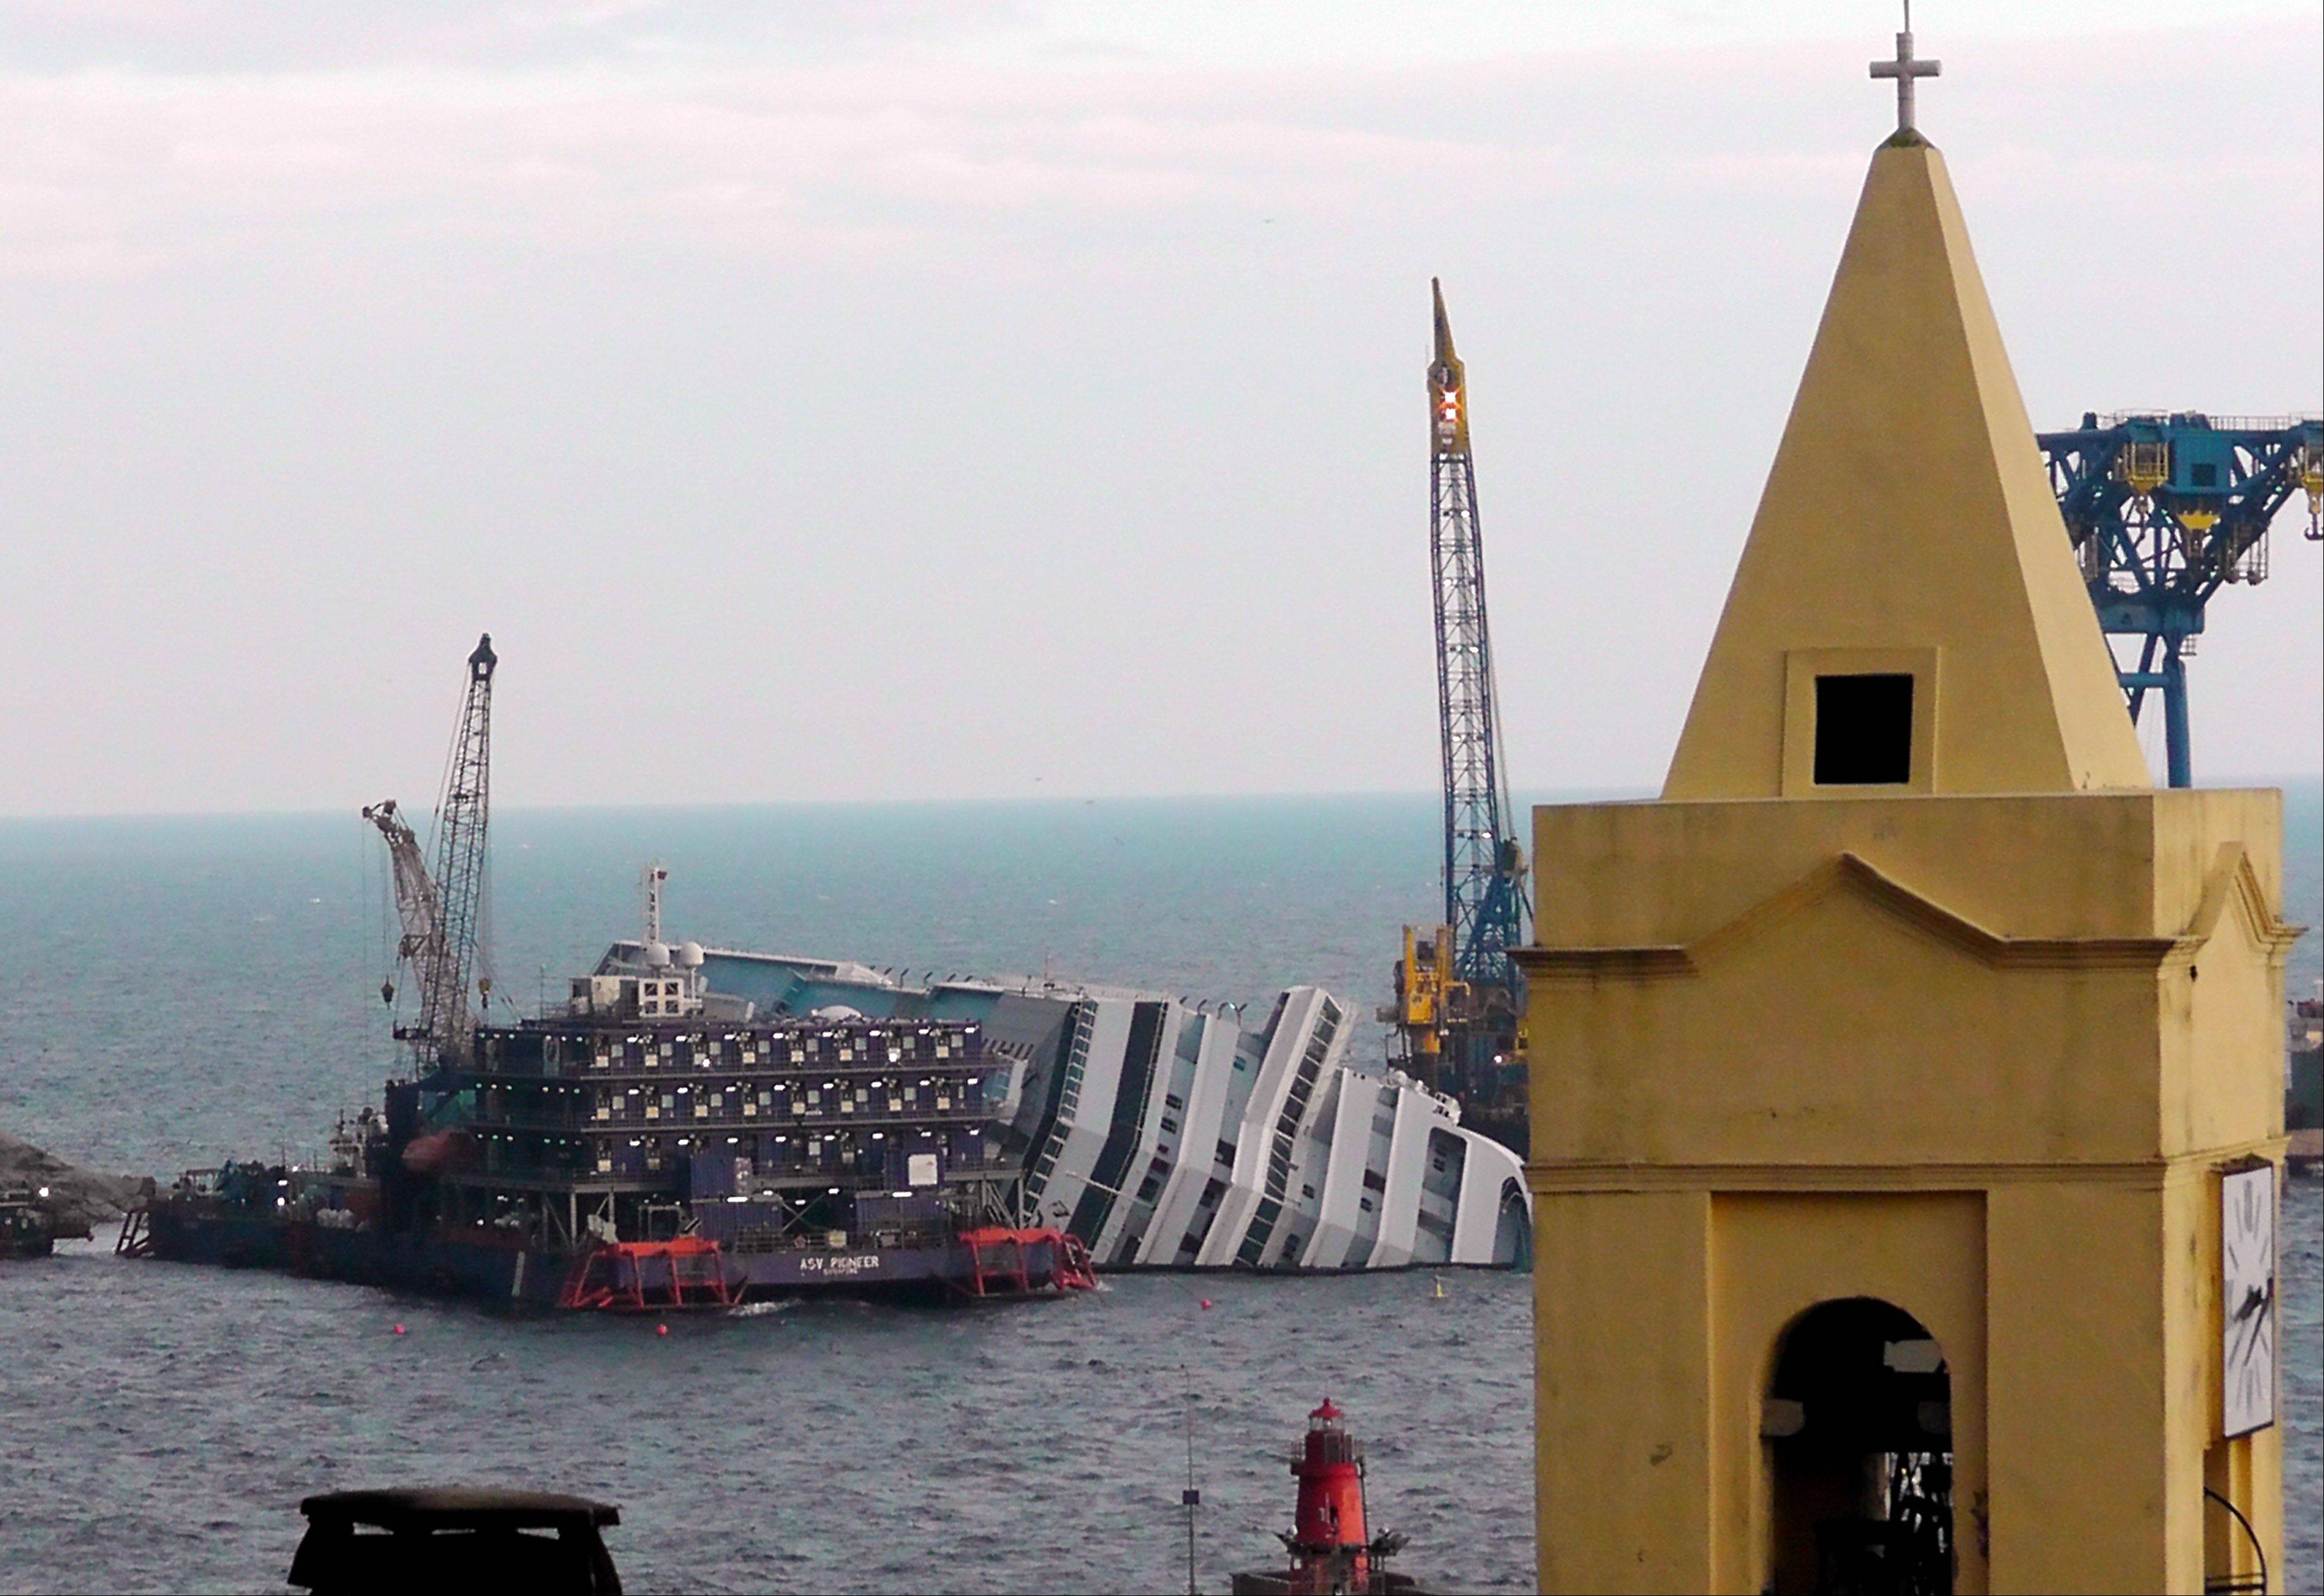 The cruise ship Costa Concordia, leaning on its side, is framed by a church bell tower in the Tuscan island of Giglio, Italy, Friday, Jan. 11, 2013. Passengers who survived the terrifying grounding and capsizing of the Costa Concordia off Tuscany have come in for a rude shock as they mark the first anniversary of the disaster on Sunday. Ship owner Costa Crociere SpA sent several passengers a letter telling them they weren�t welcome at the official anniversary ceremonies on the island of Giglio where the hulking ship still rests. Costa says the day is focused on the families of the 32 people who died Jan. 13, 2012, not the 4,200 passengers and crew who survived.